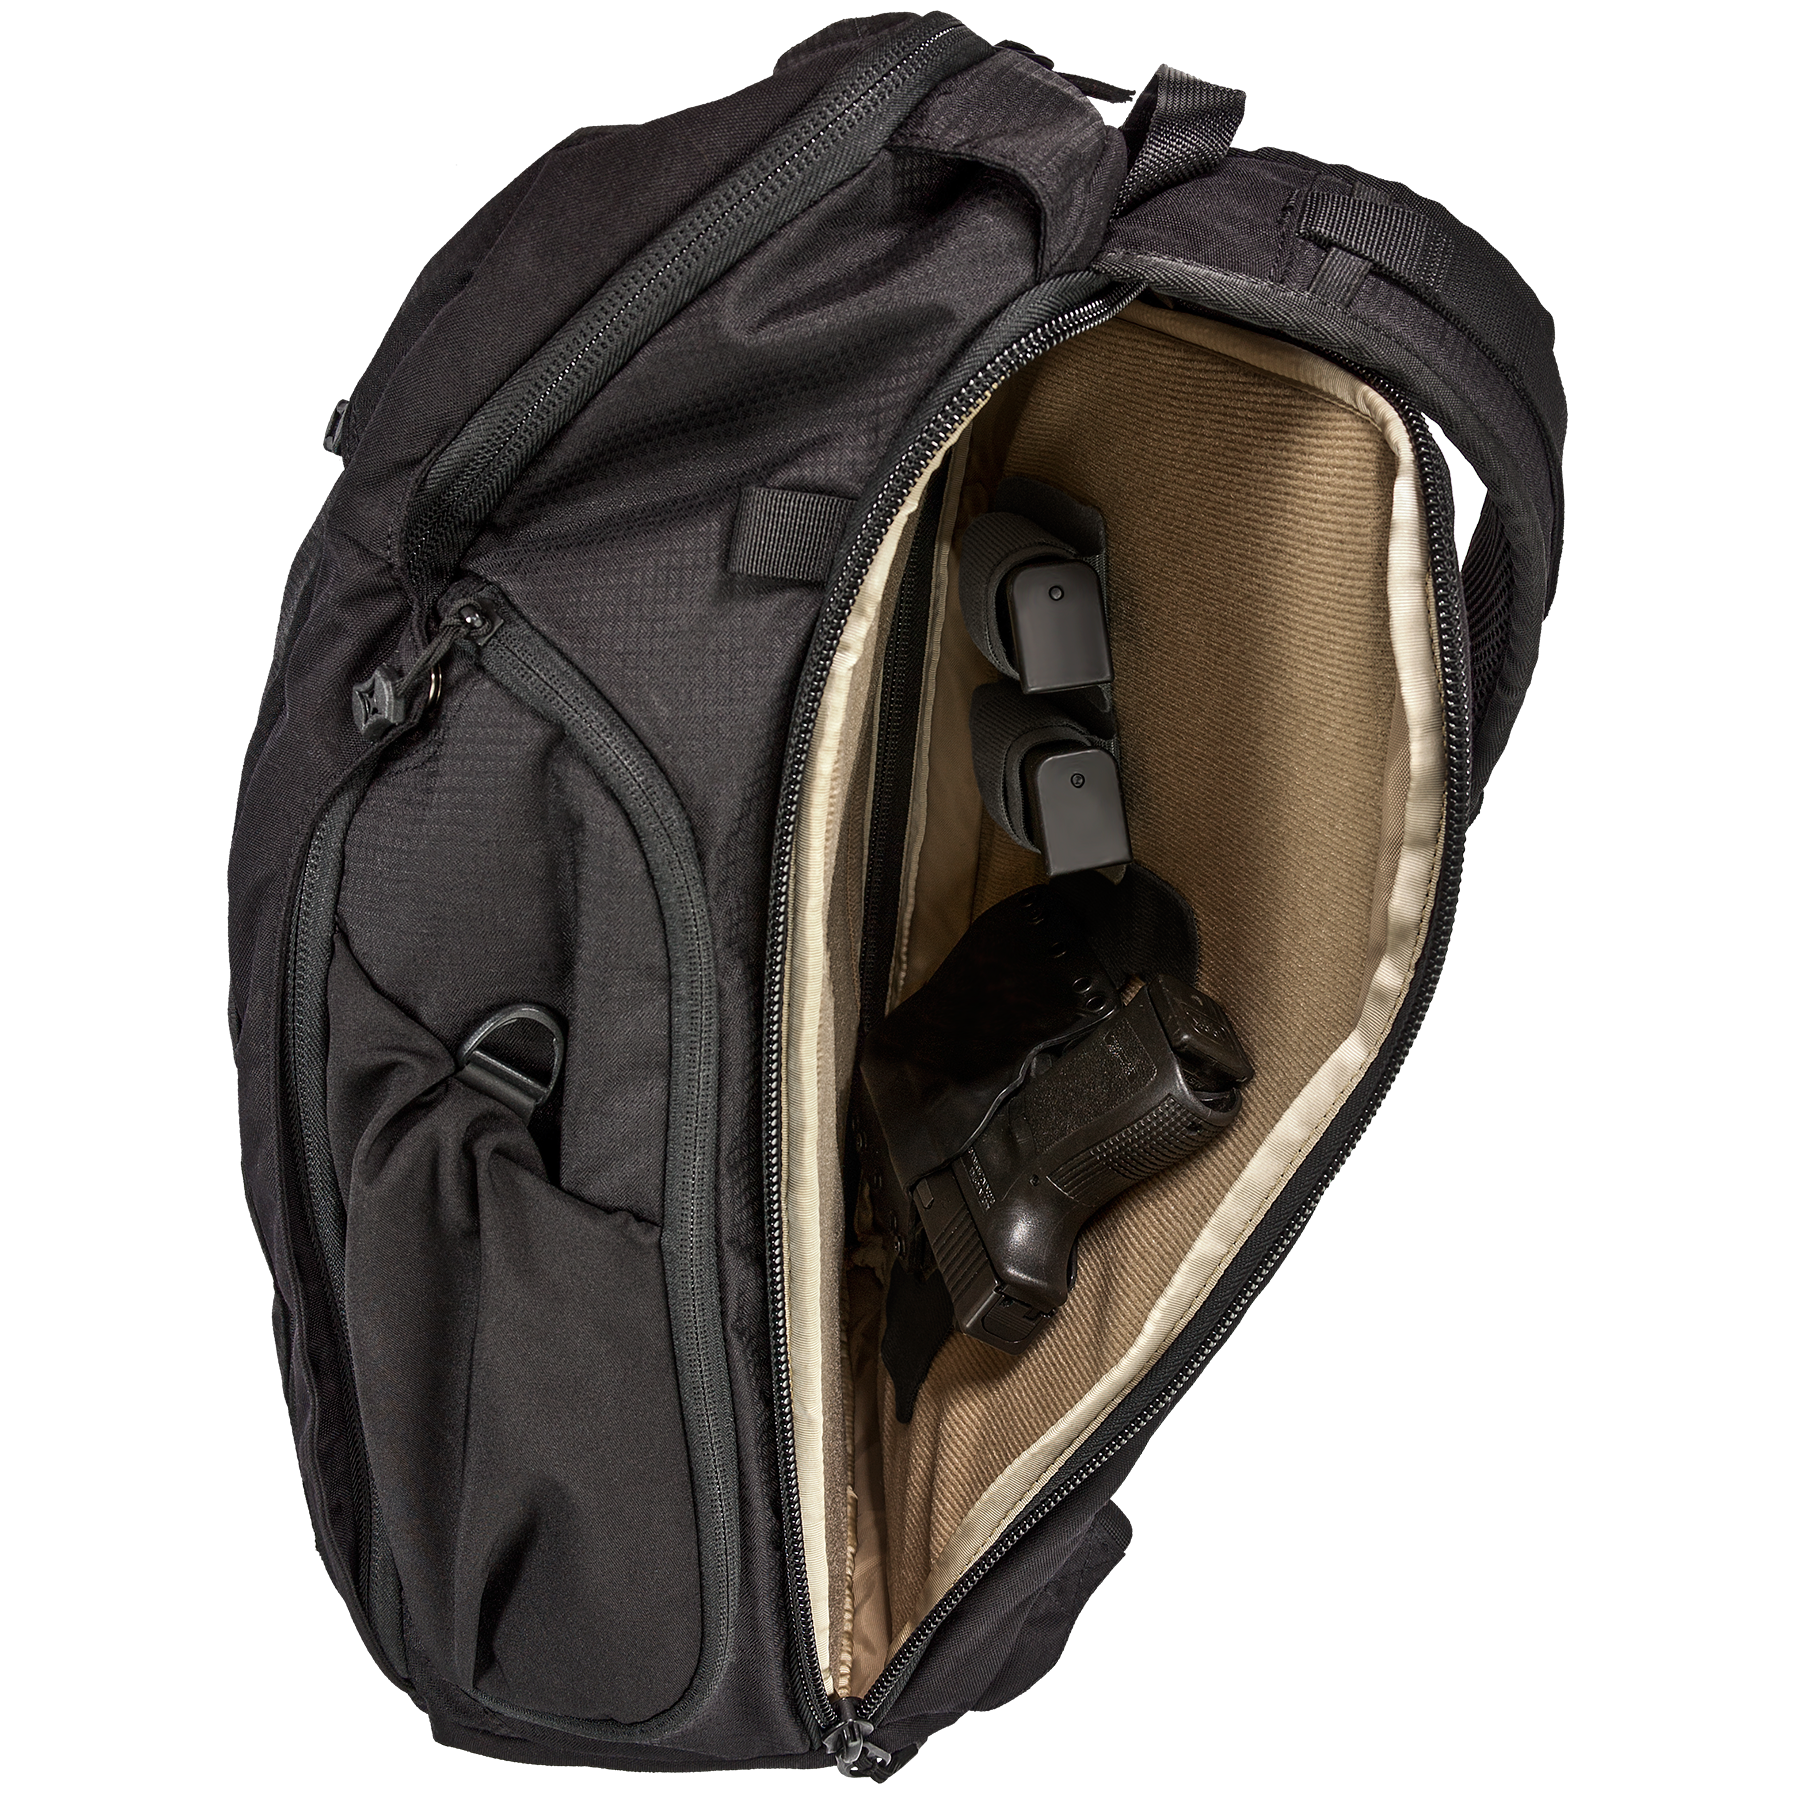 Vertx Gamut Backpack Concealed Carry Save Those Thumbs Bucks W Free Shipping On This Magloader I Purchased Mine Http Www S Raeind No